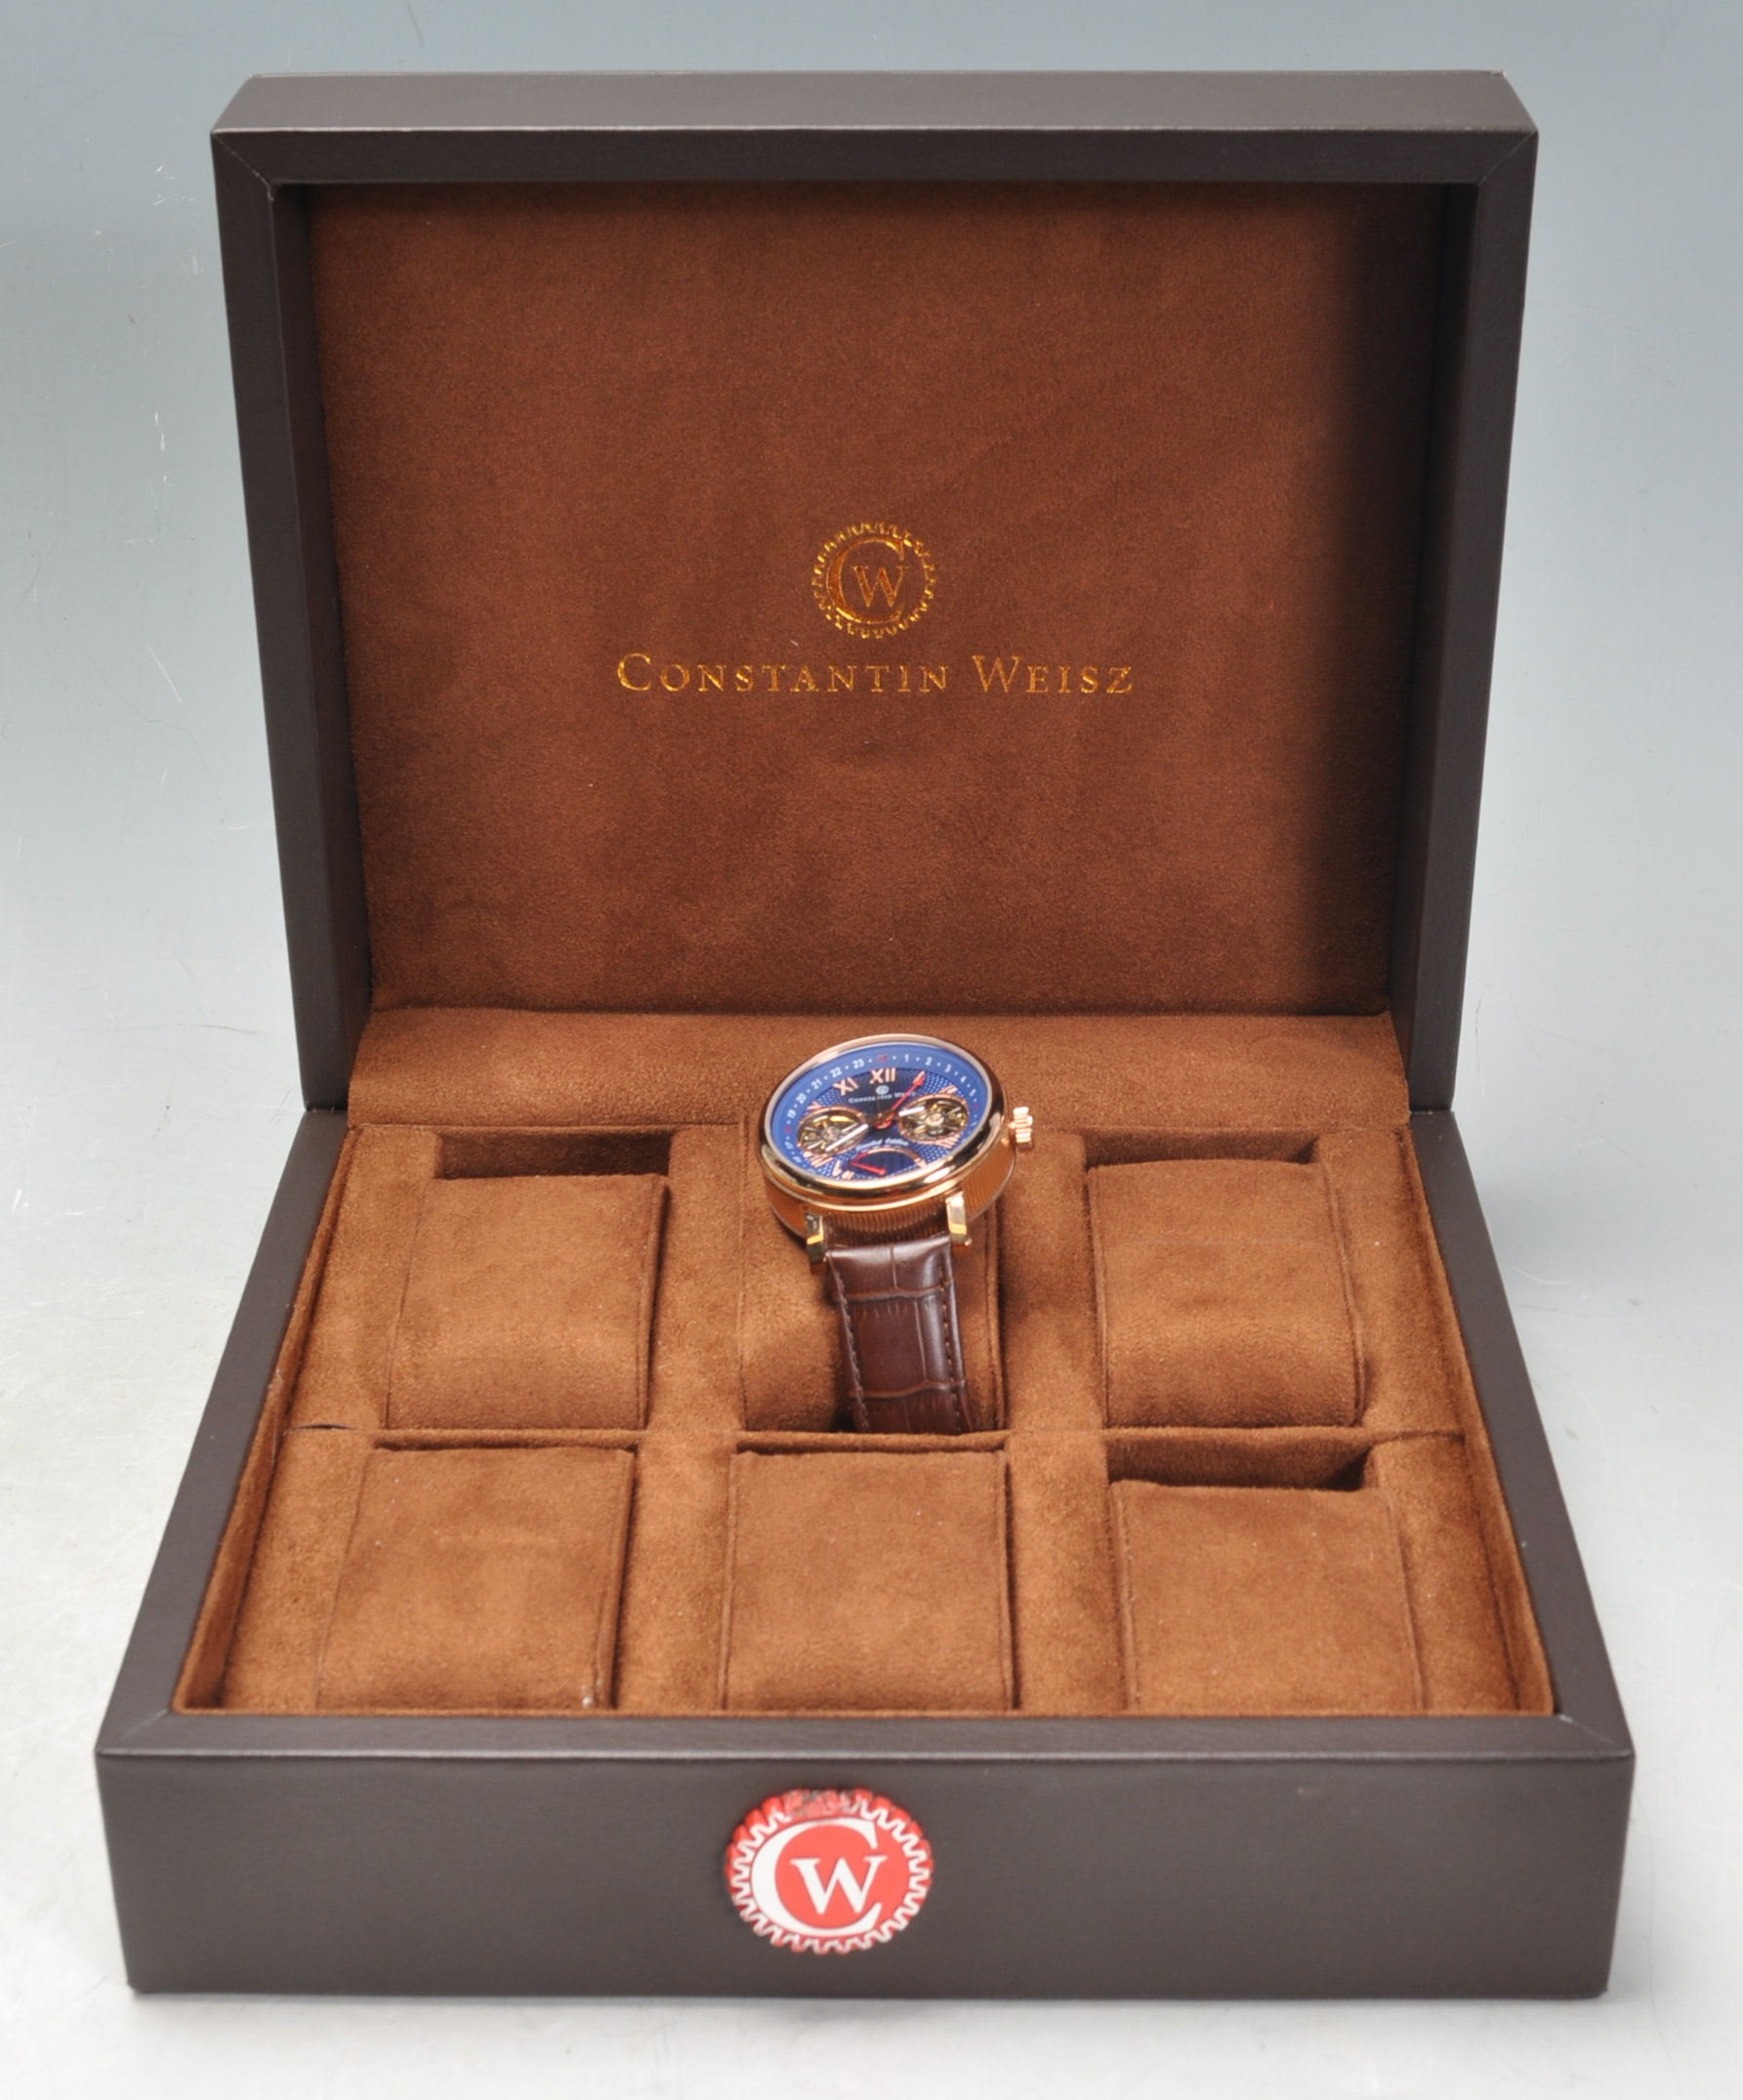 CONSTANTIN WEISZ DOUBLE HEART AUTOMATIC WRISTWATCH - Image 7 of 7